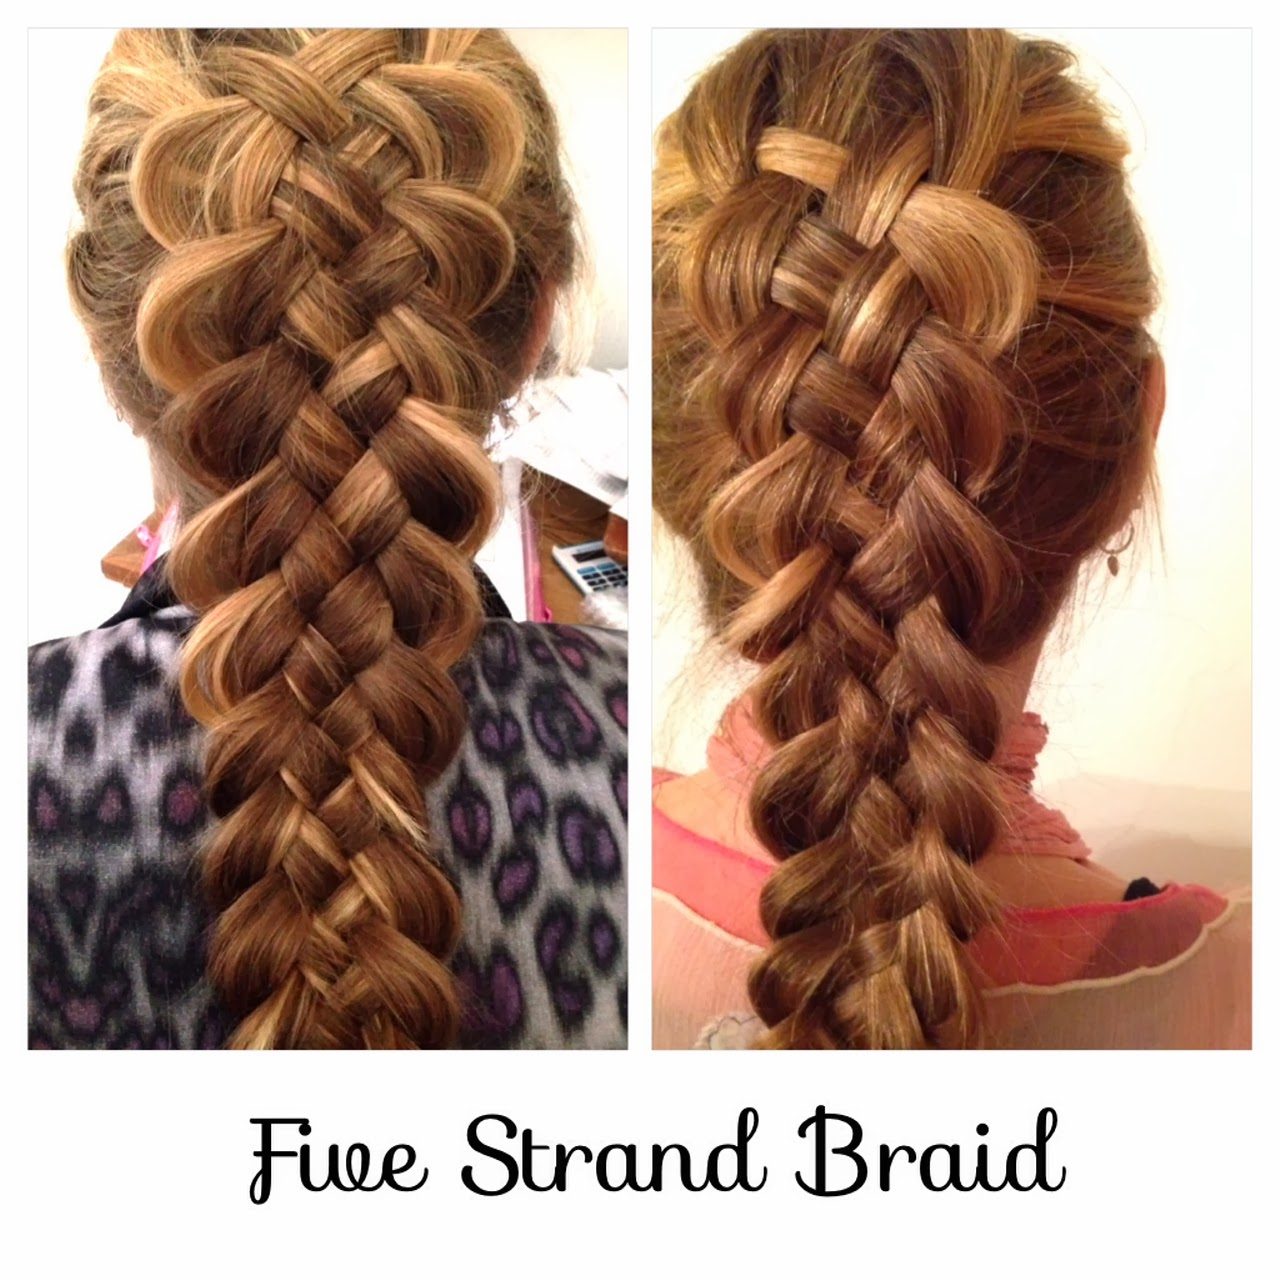 Luxurious braid of 4 strands